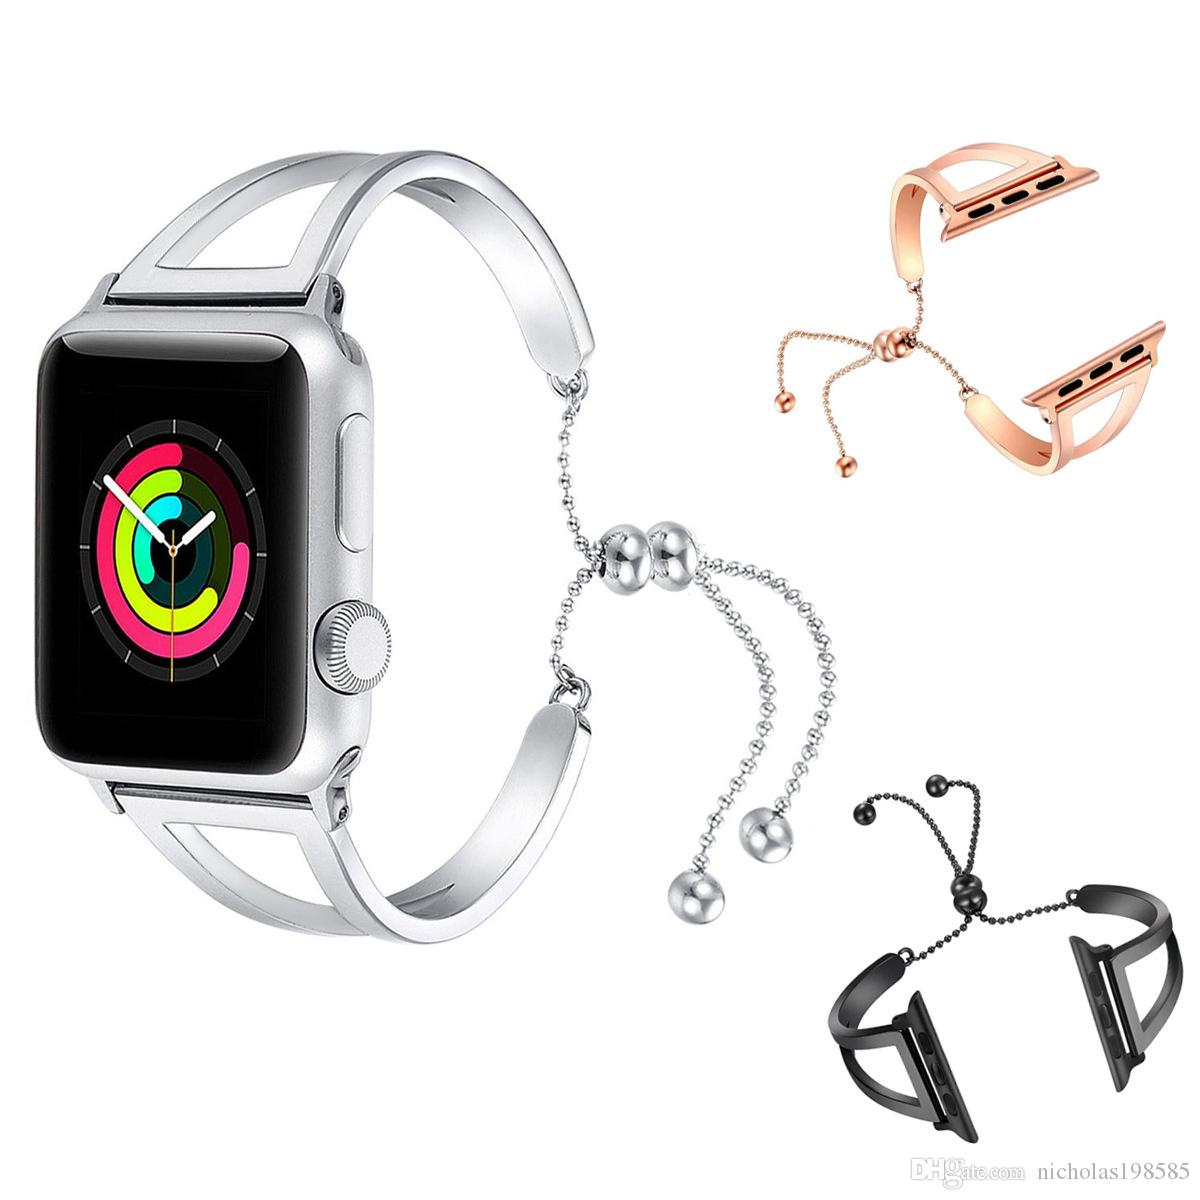 4e03b07c9e8e Women Girls Bracelet Watch Strap For Apple Watch Band 38mm 42mm Iwatch  Series 4 3 2 1 Luxury Stainless Steel Replacement Band Leather Strap For  Watches ...